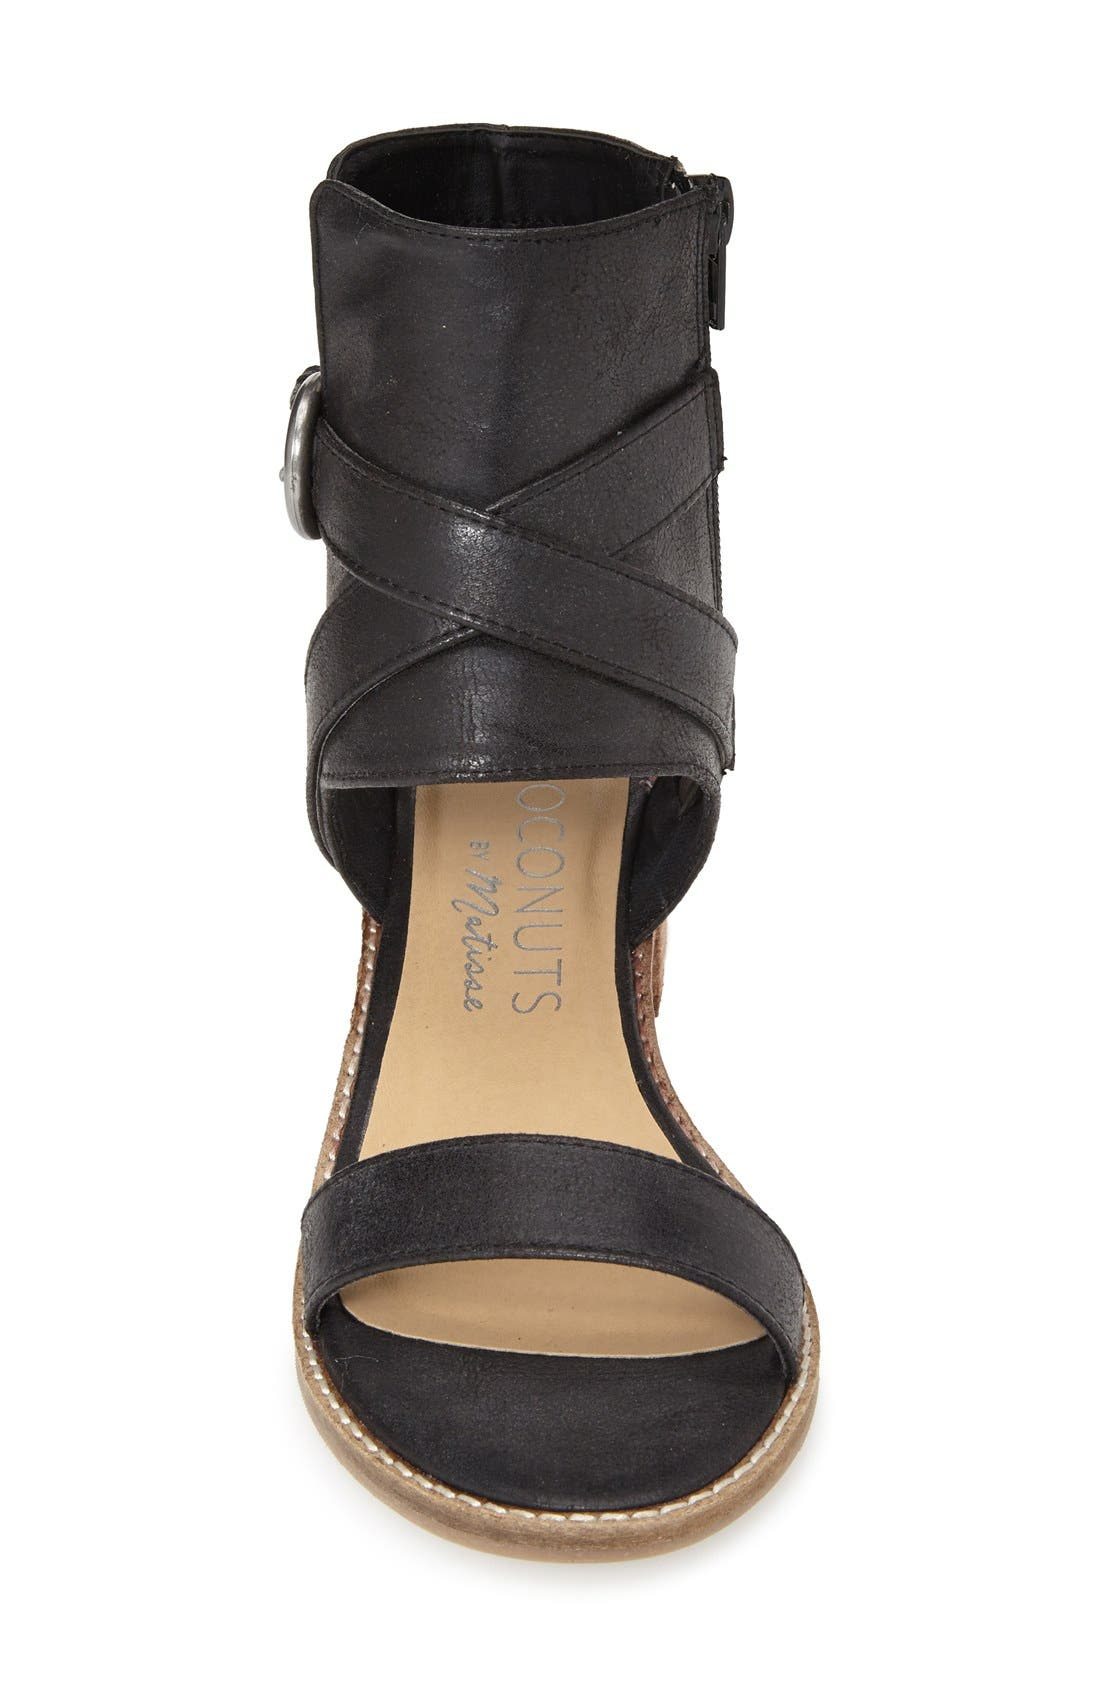 Alternate Image 3  - Coconuts by Matisse 'Tudor' Ankle Cuff Sandal (Women)